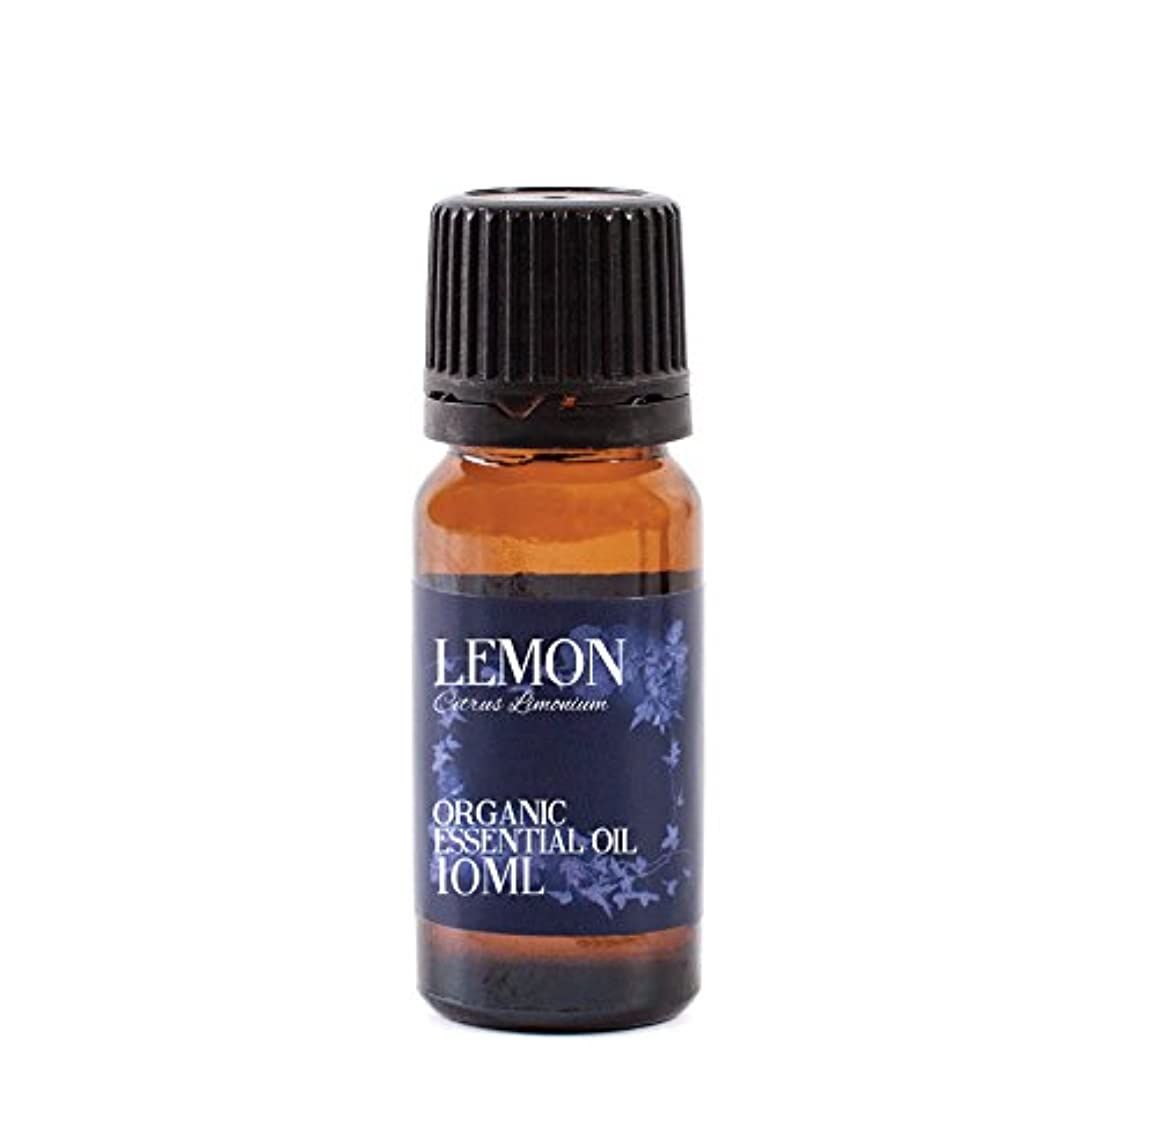 感謝する千賢明なMystic Moments | Lemon Organic Essential Oil - 10ml - 100% Pure